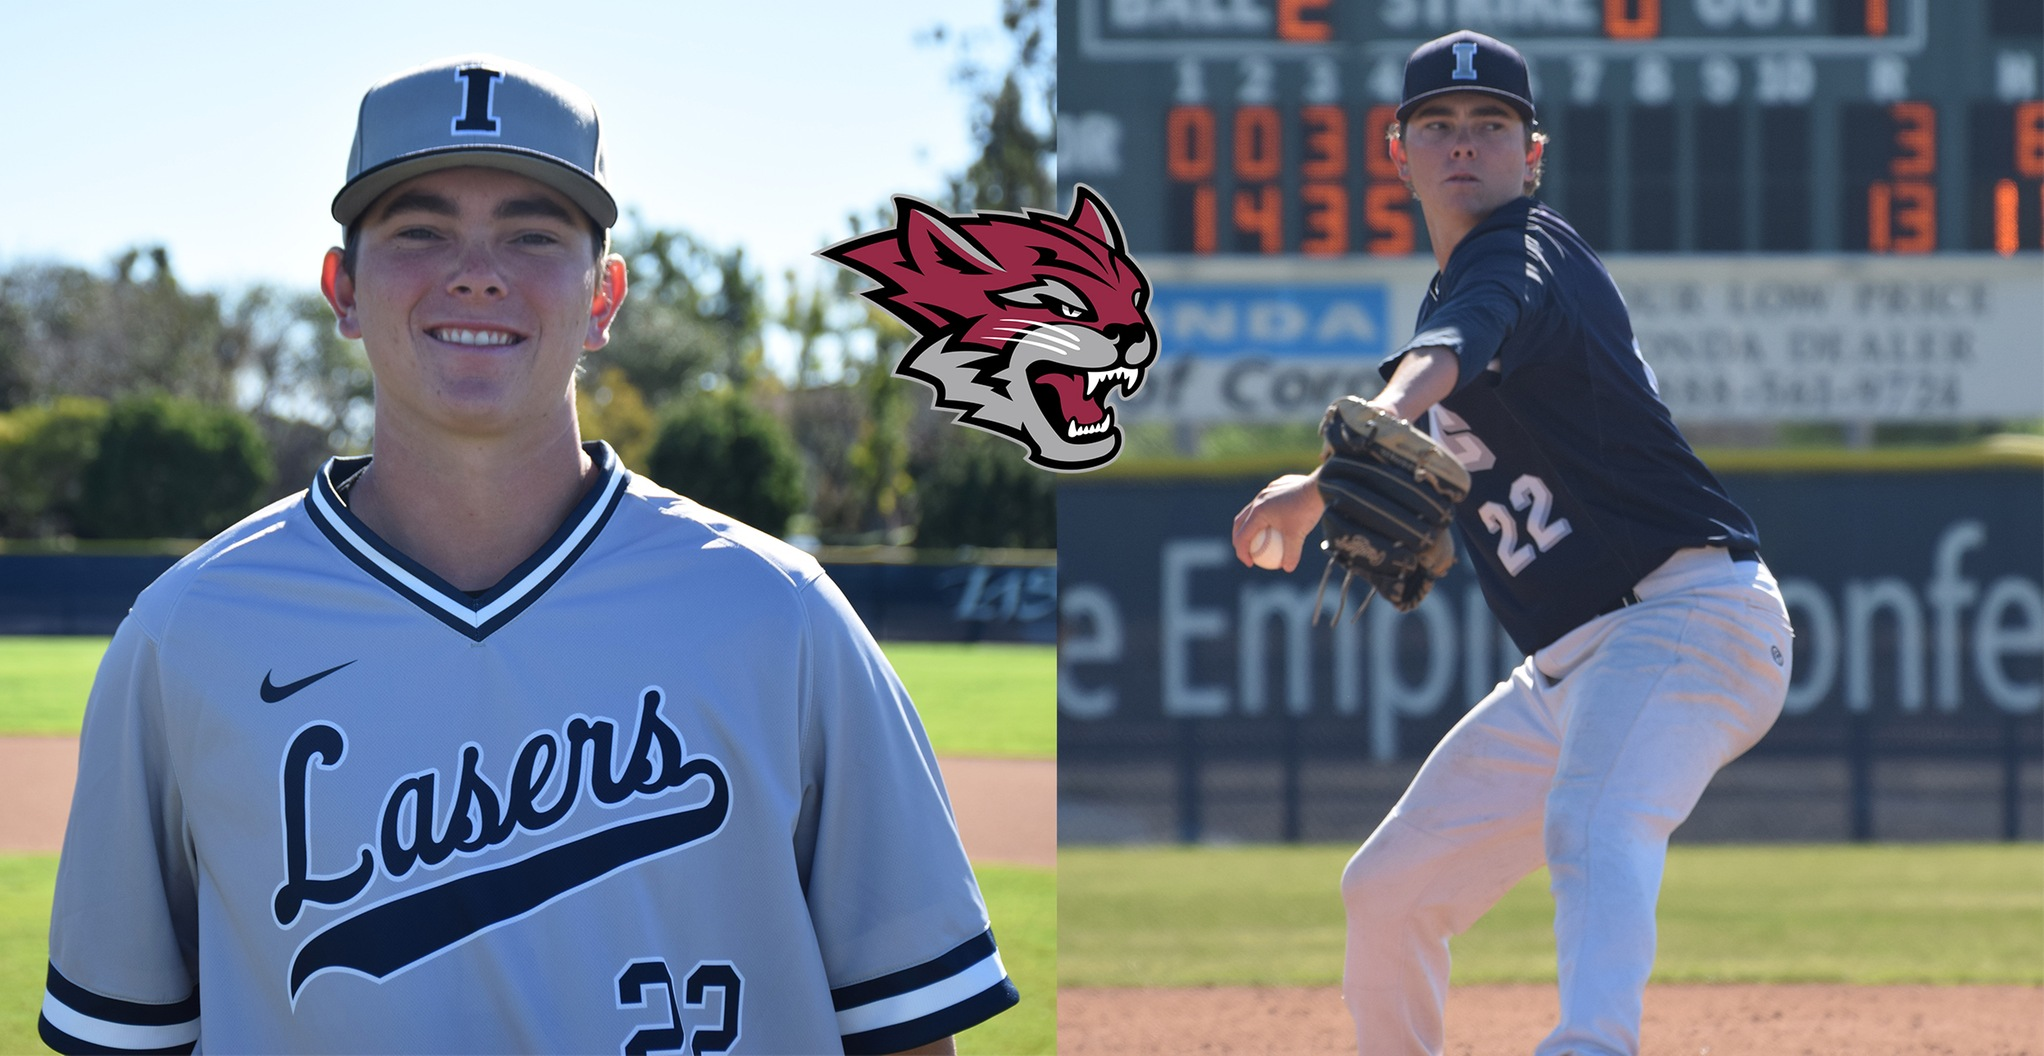 Laser pitcher Chad Burchit headed to Chico State